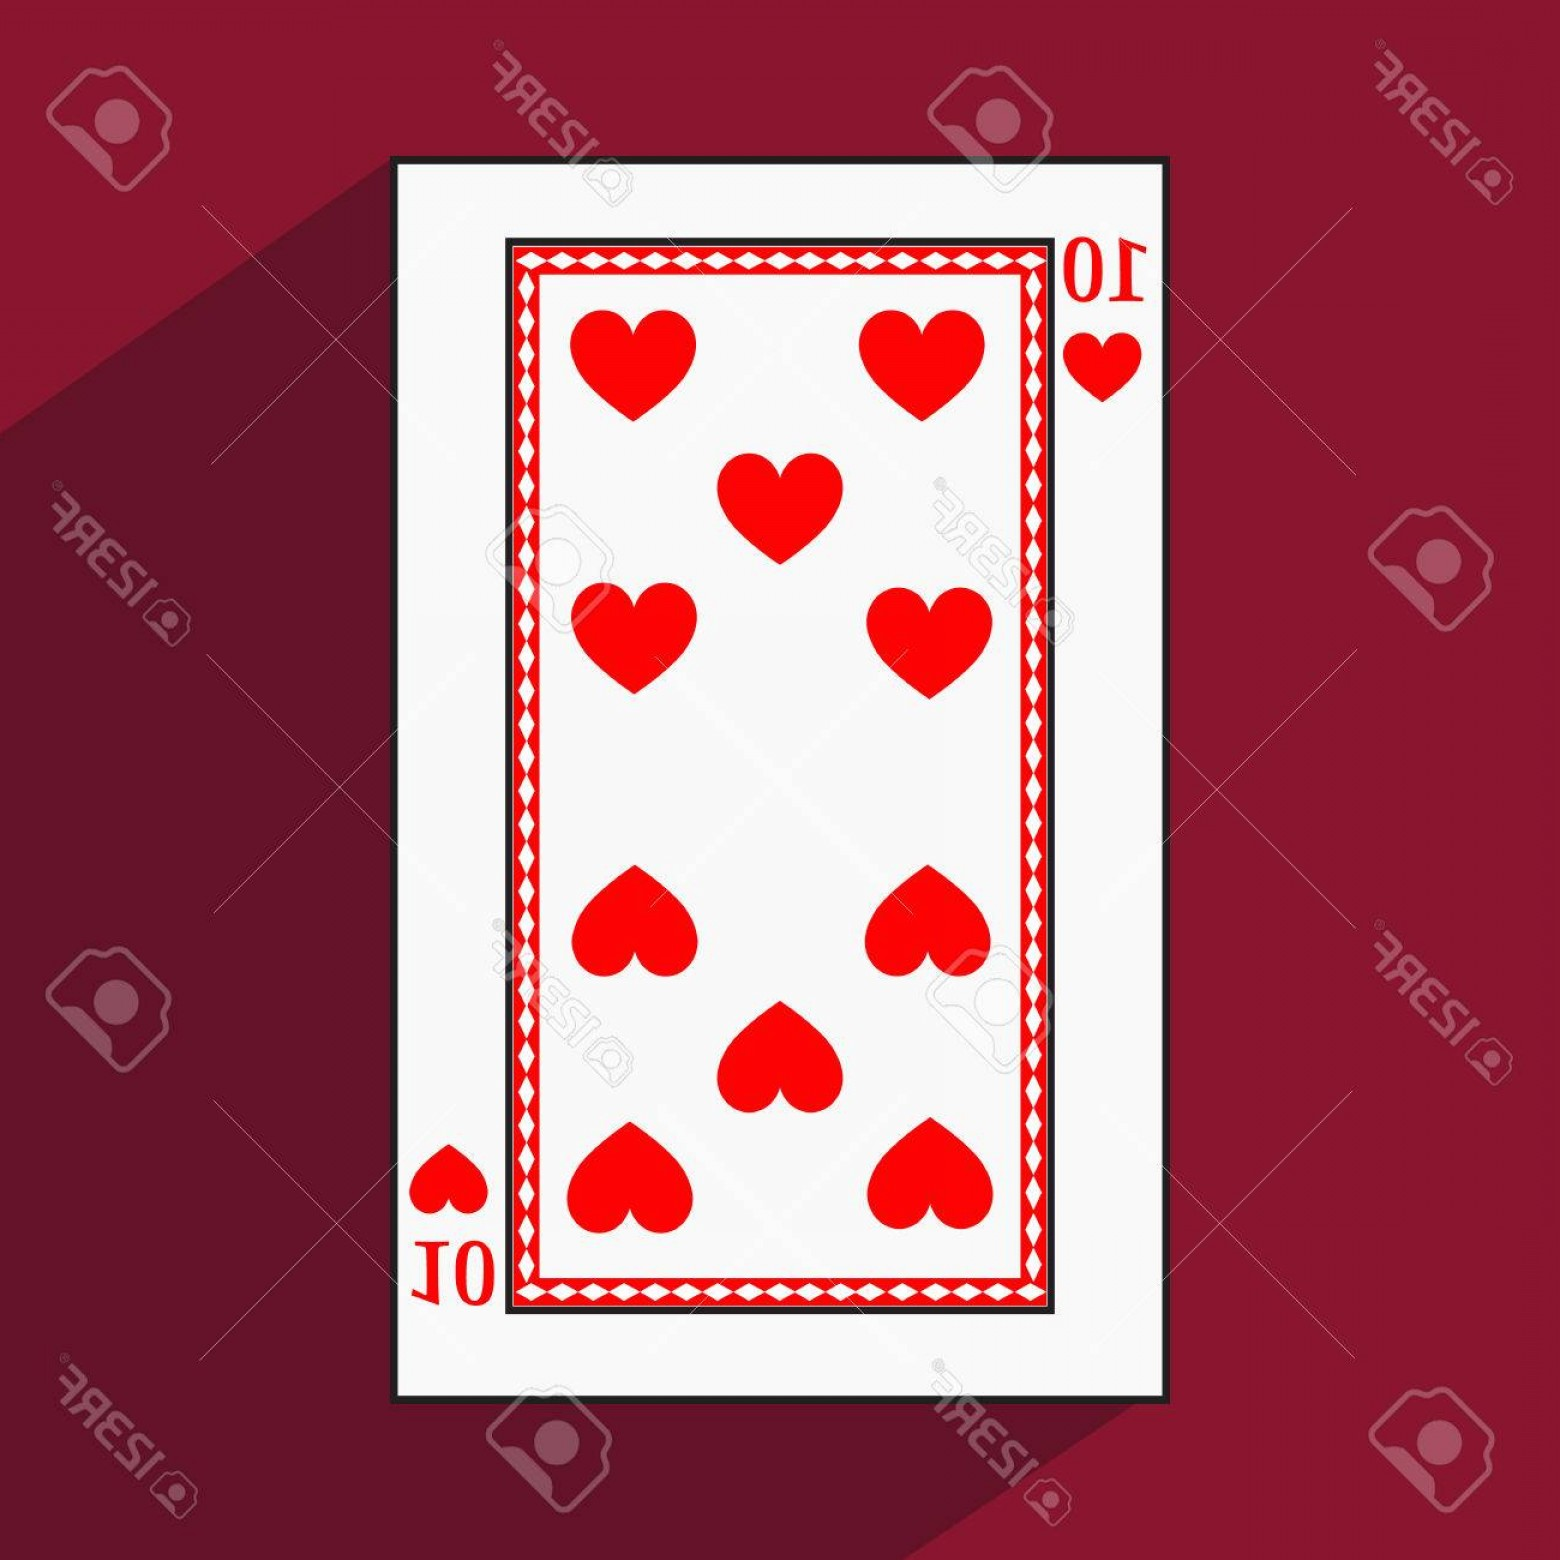 10 Playing Card Vector: Photostock Vector Playing Card The Icon Picture Is Easy Heart Ten With White A Basis Substrate A Vector Illustratio